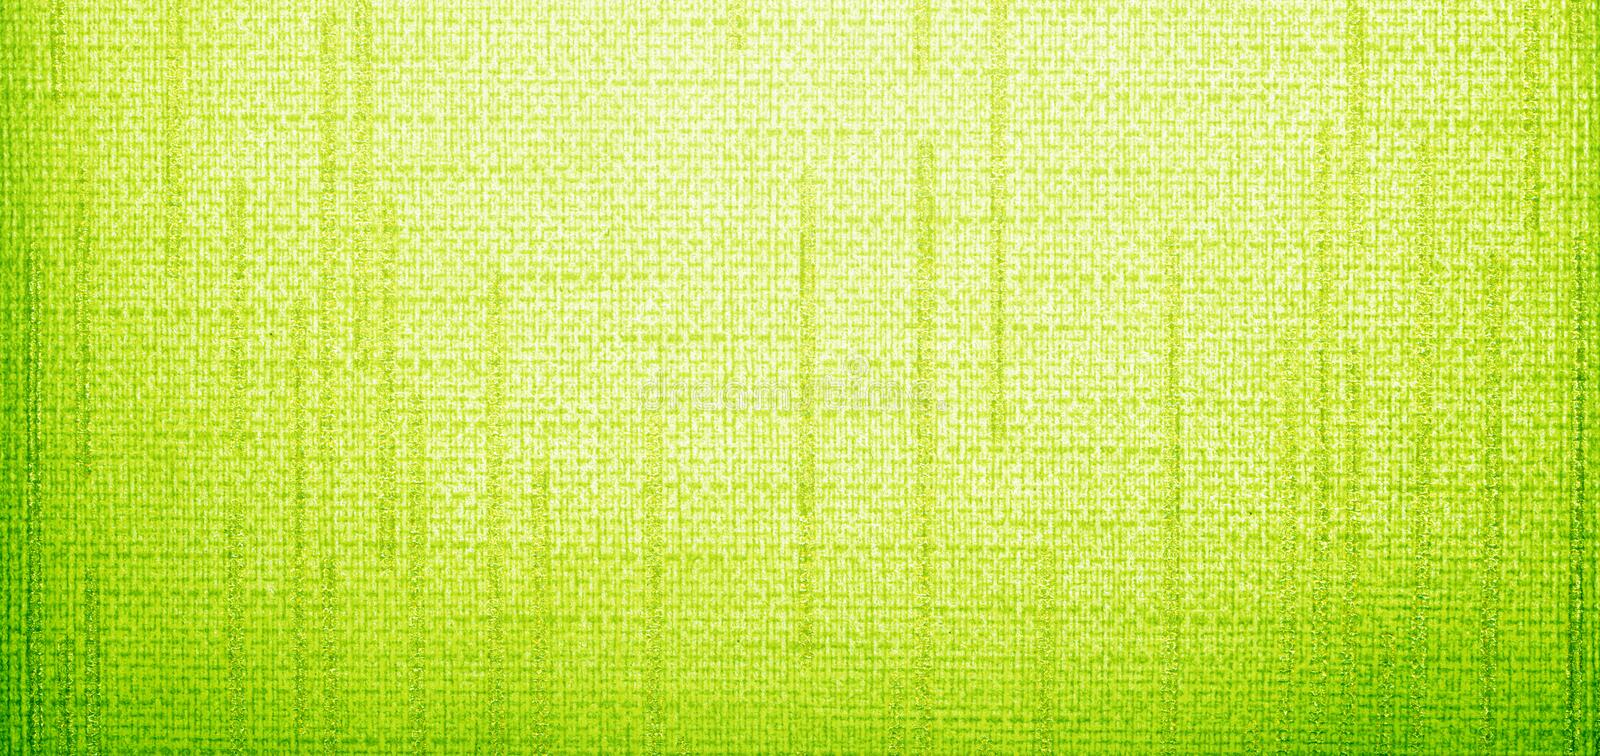 Green canvas background vector illustration